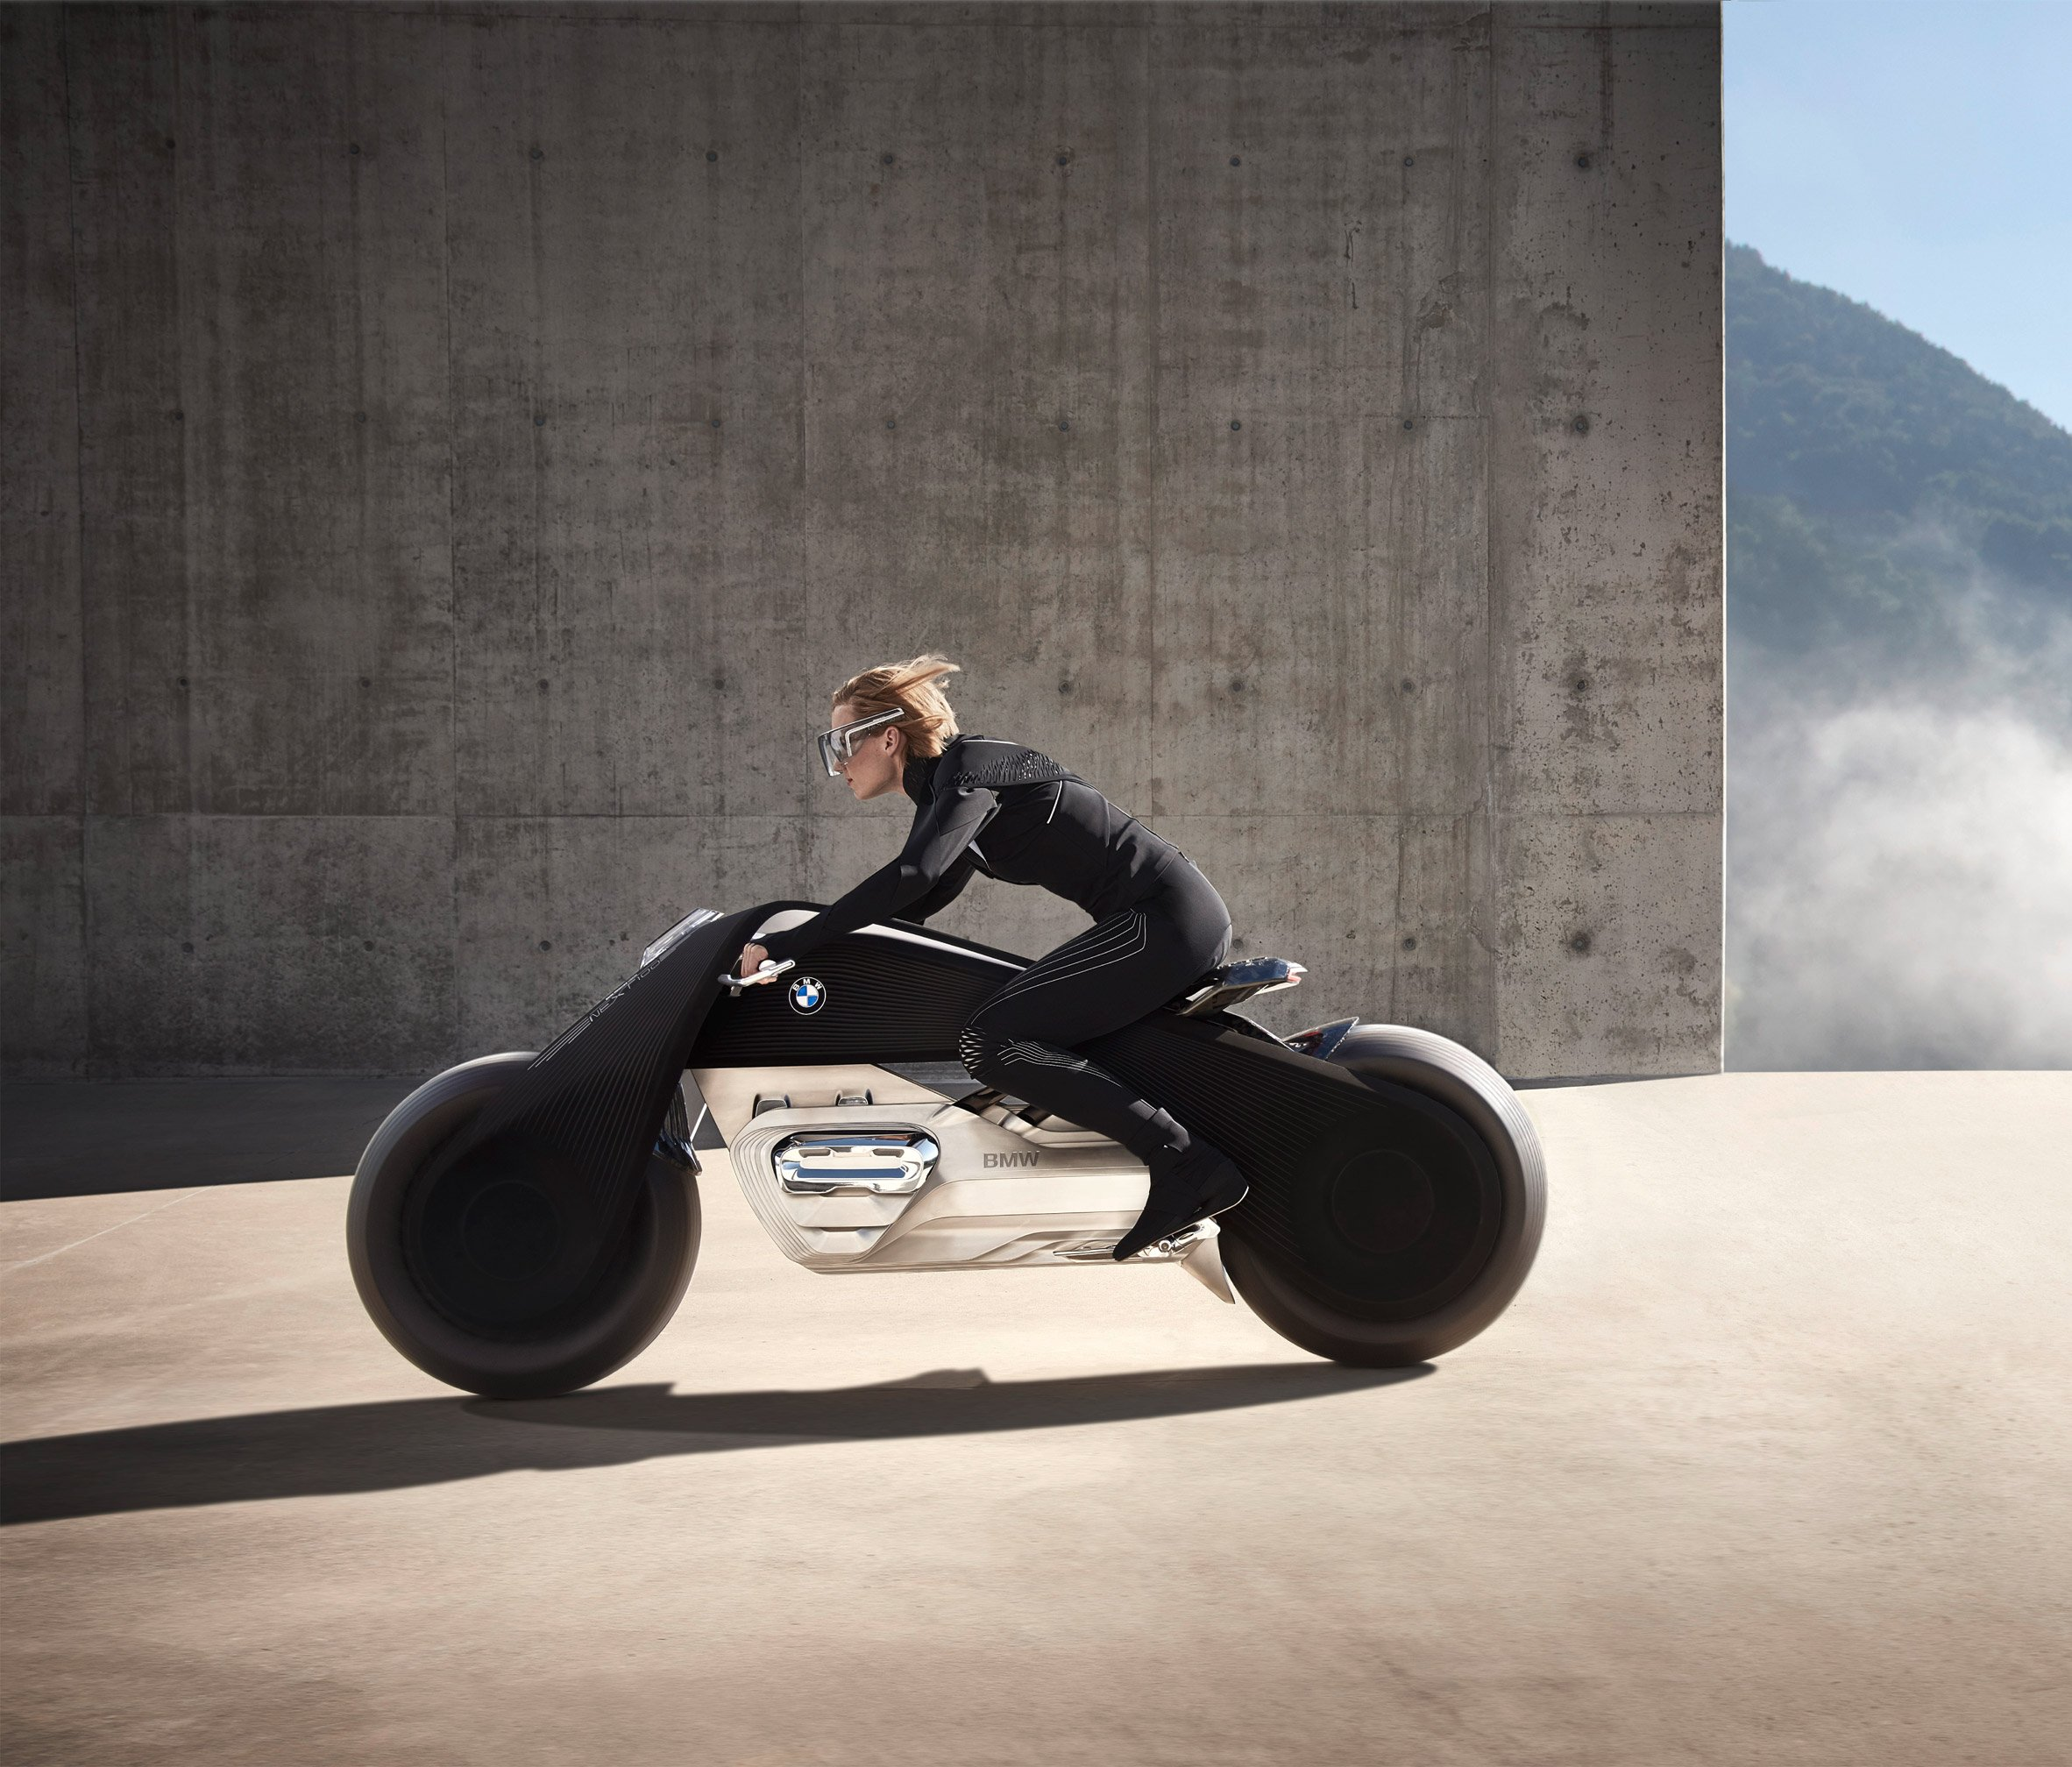 BMW unveils super-safe motorcycle that can't fall over